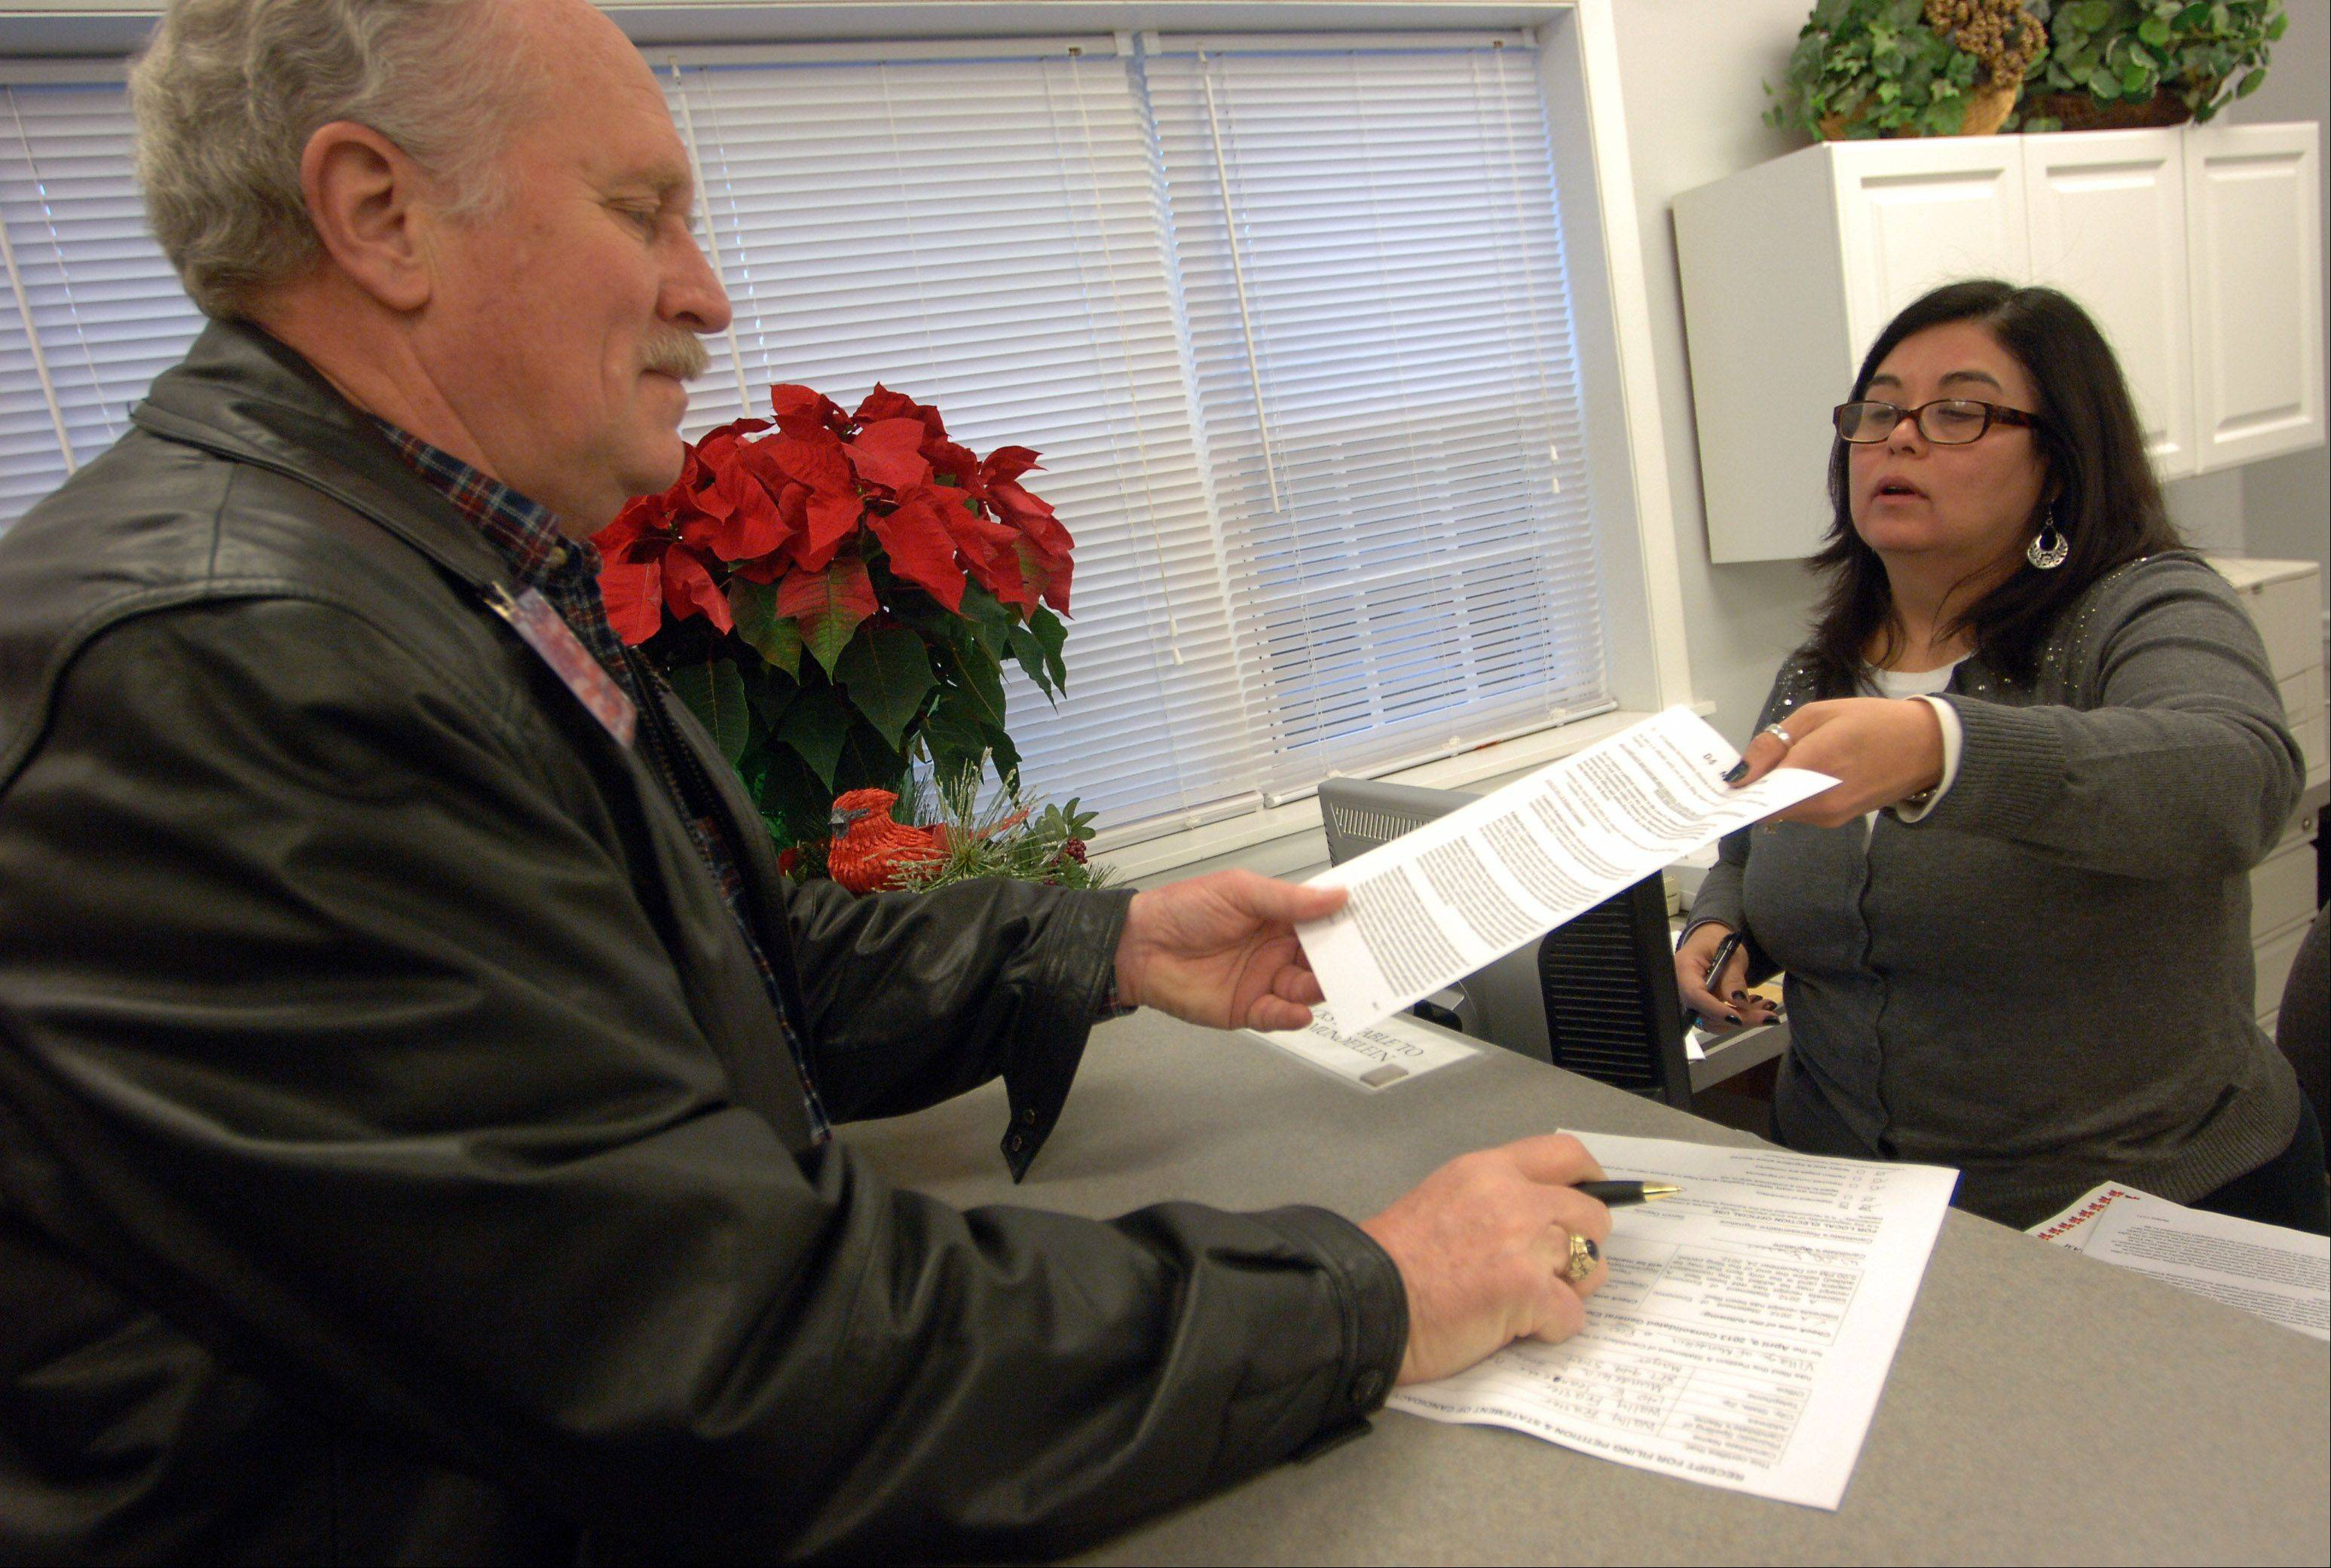 Mundelein mayoral candidate Wally Frasier files his papers with village clerk Esmie Dahlstrom Monday morning at the village hall.